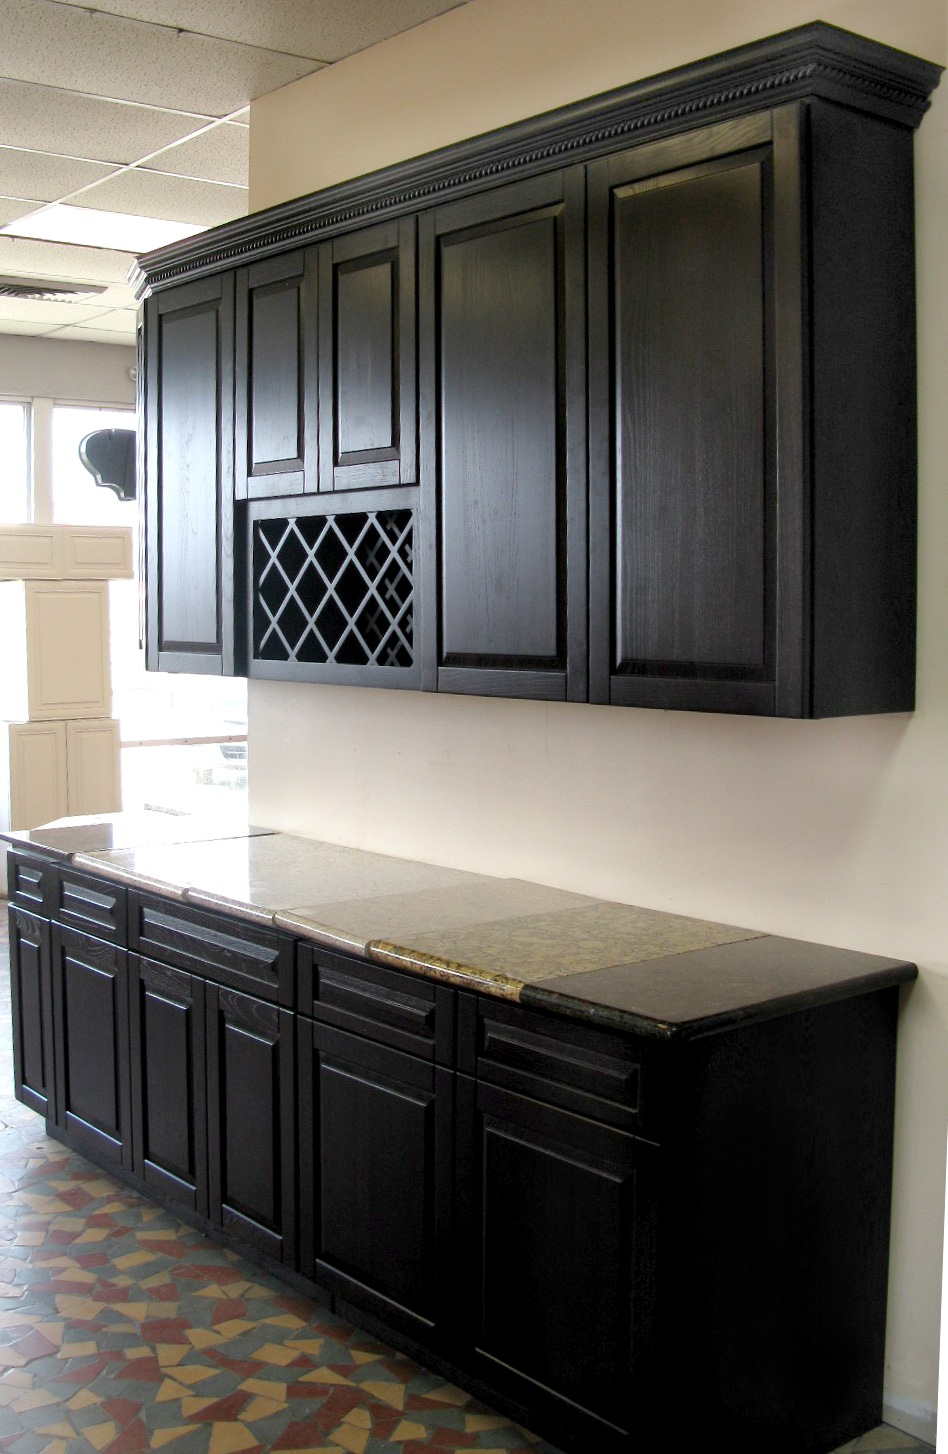 Cabinets for kitchen photos black kitchen cabinets - Kitchen door designs ...